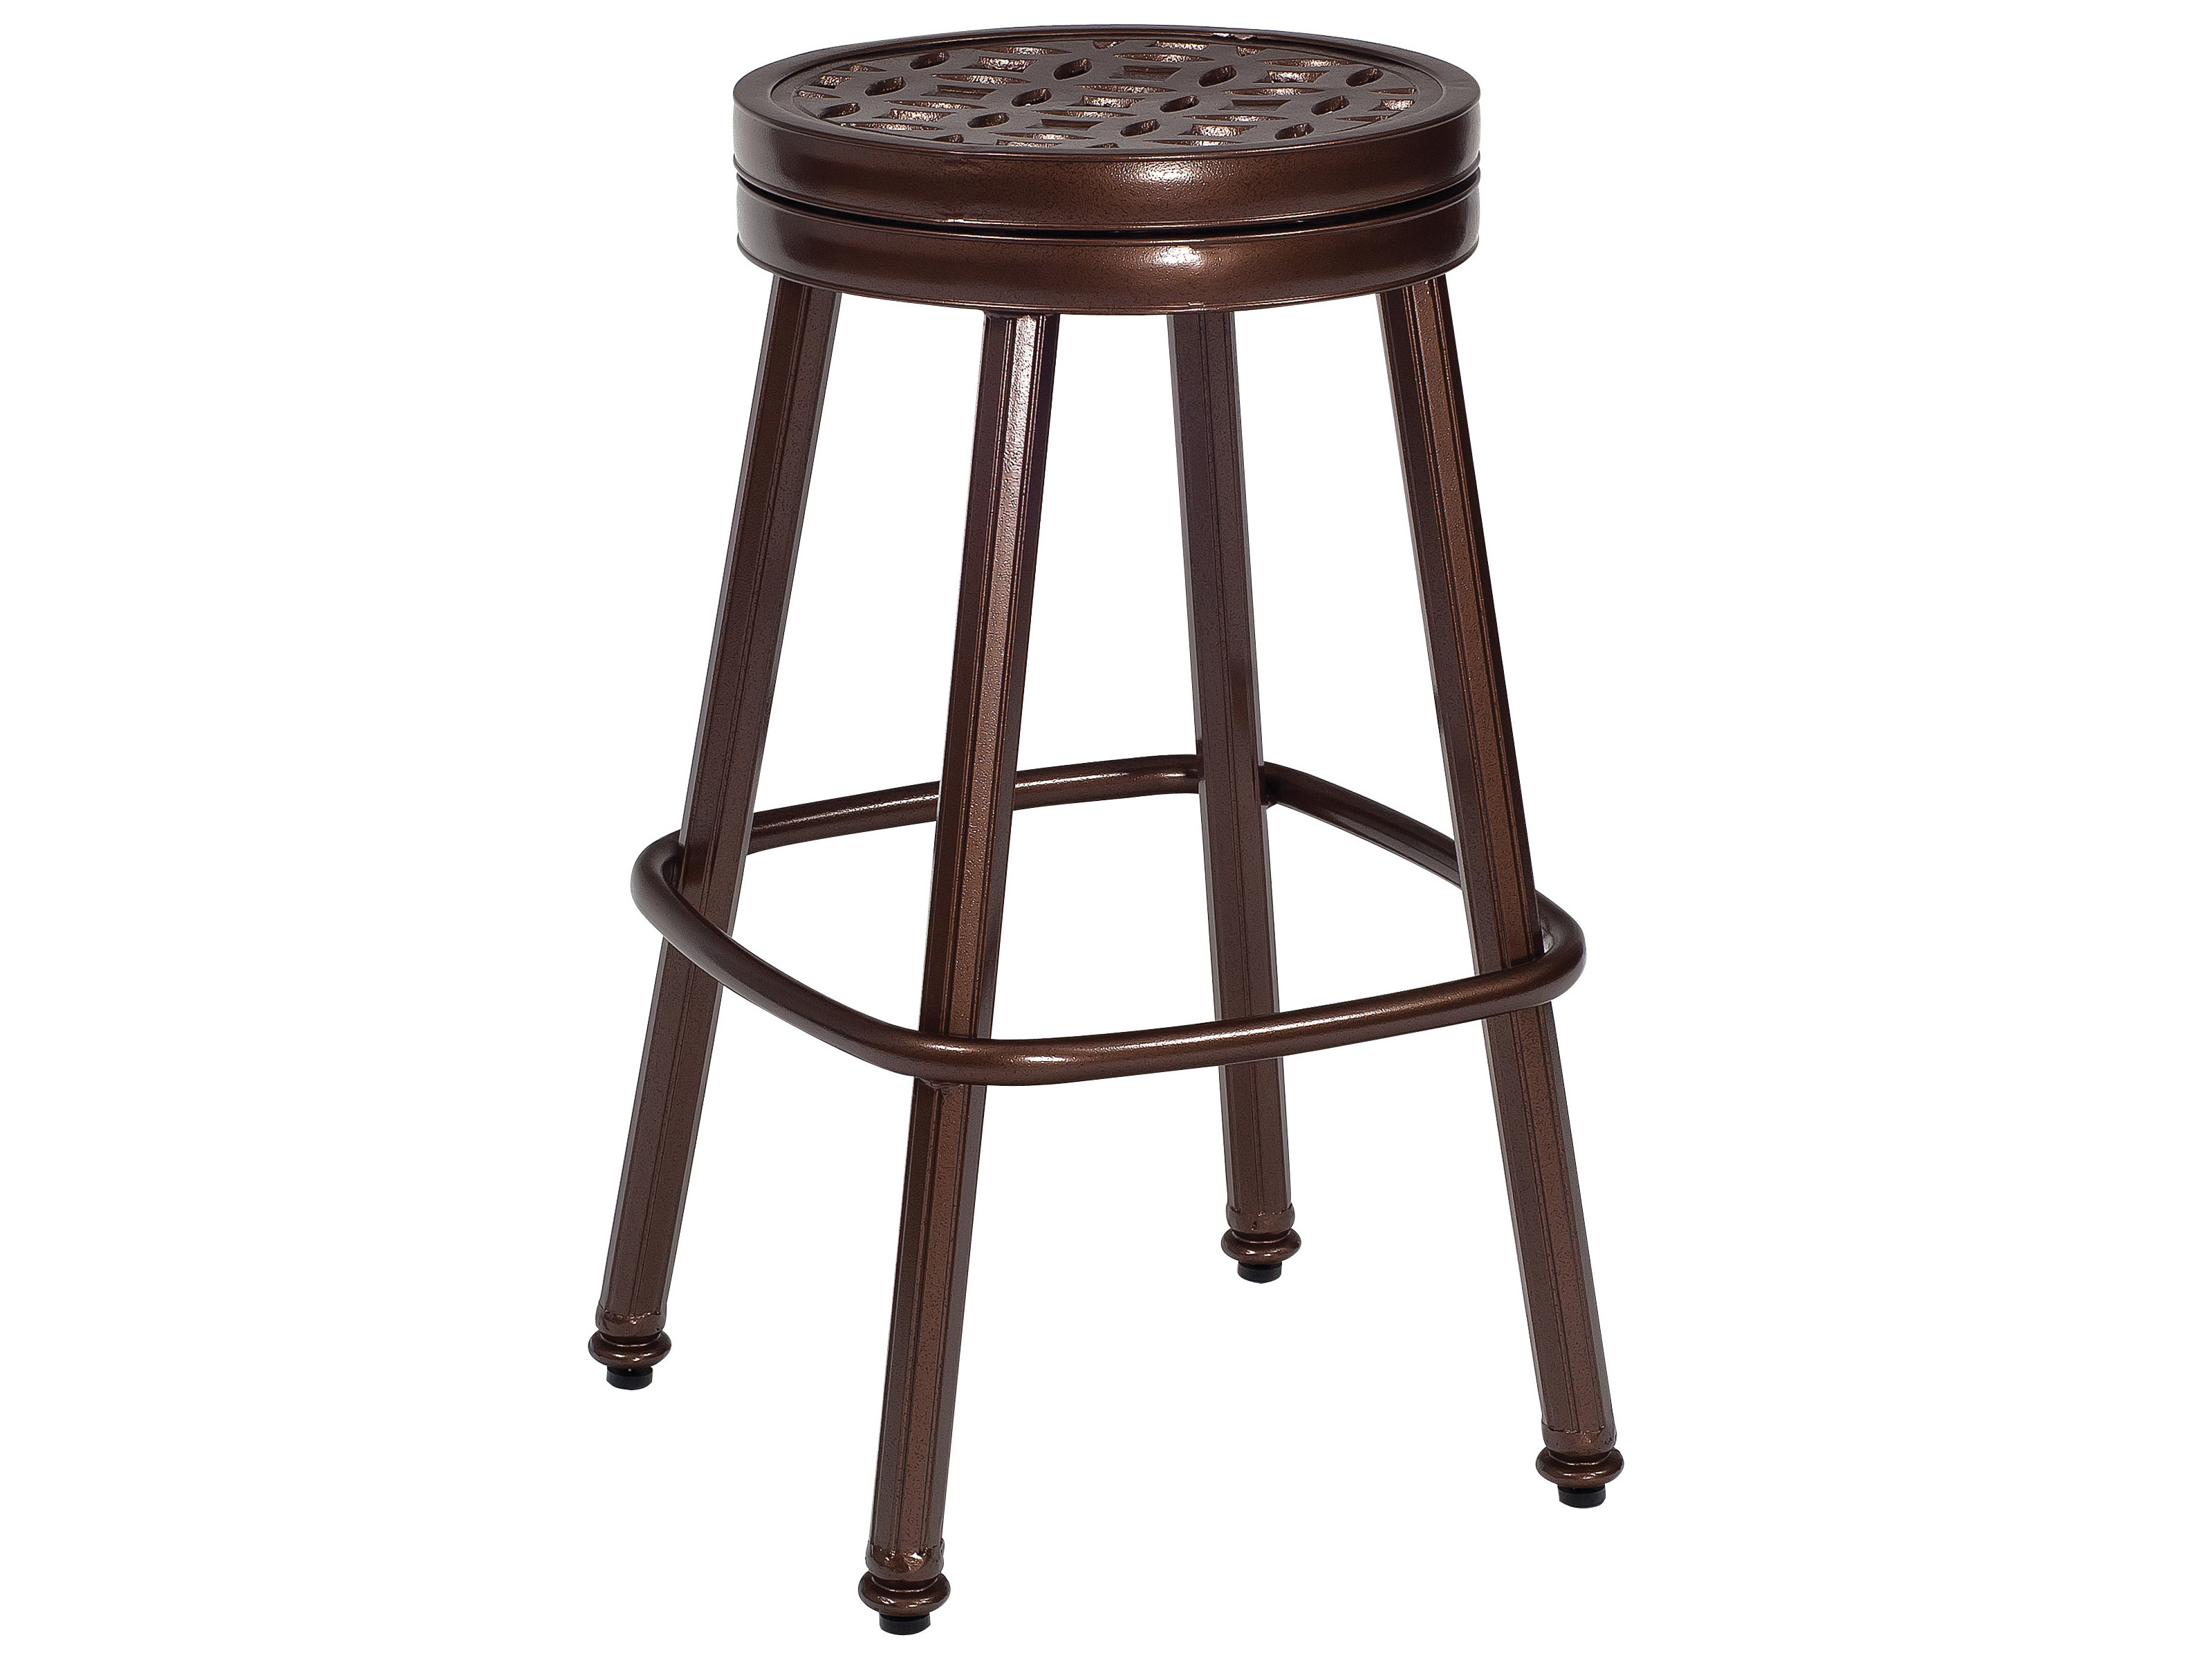 Woodard Casa Round Swivel Bar Stool Replacement Cushions